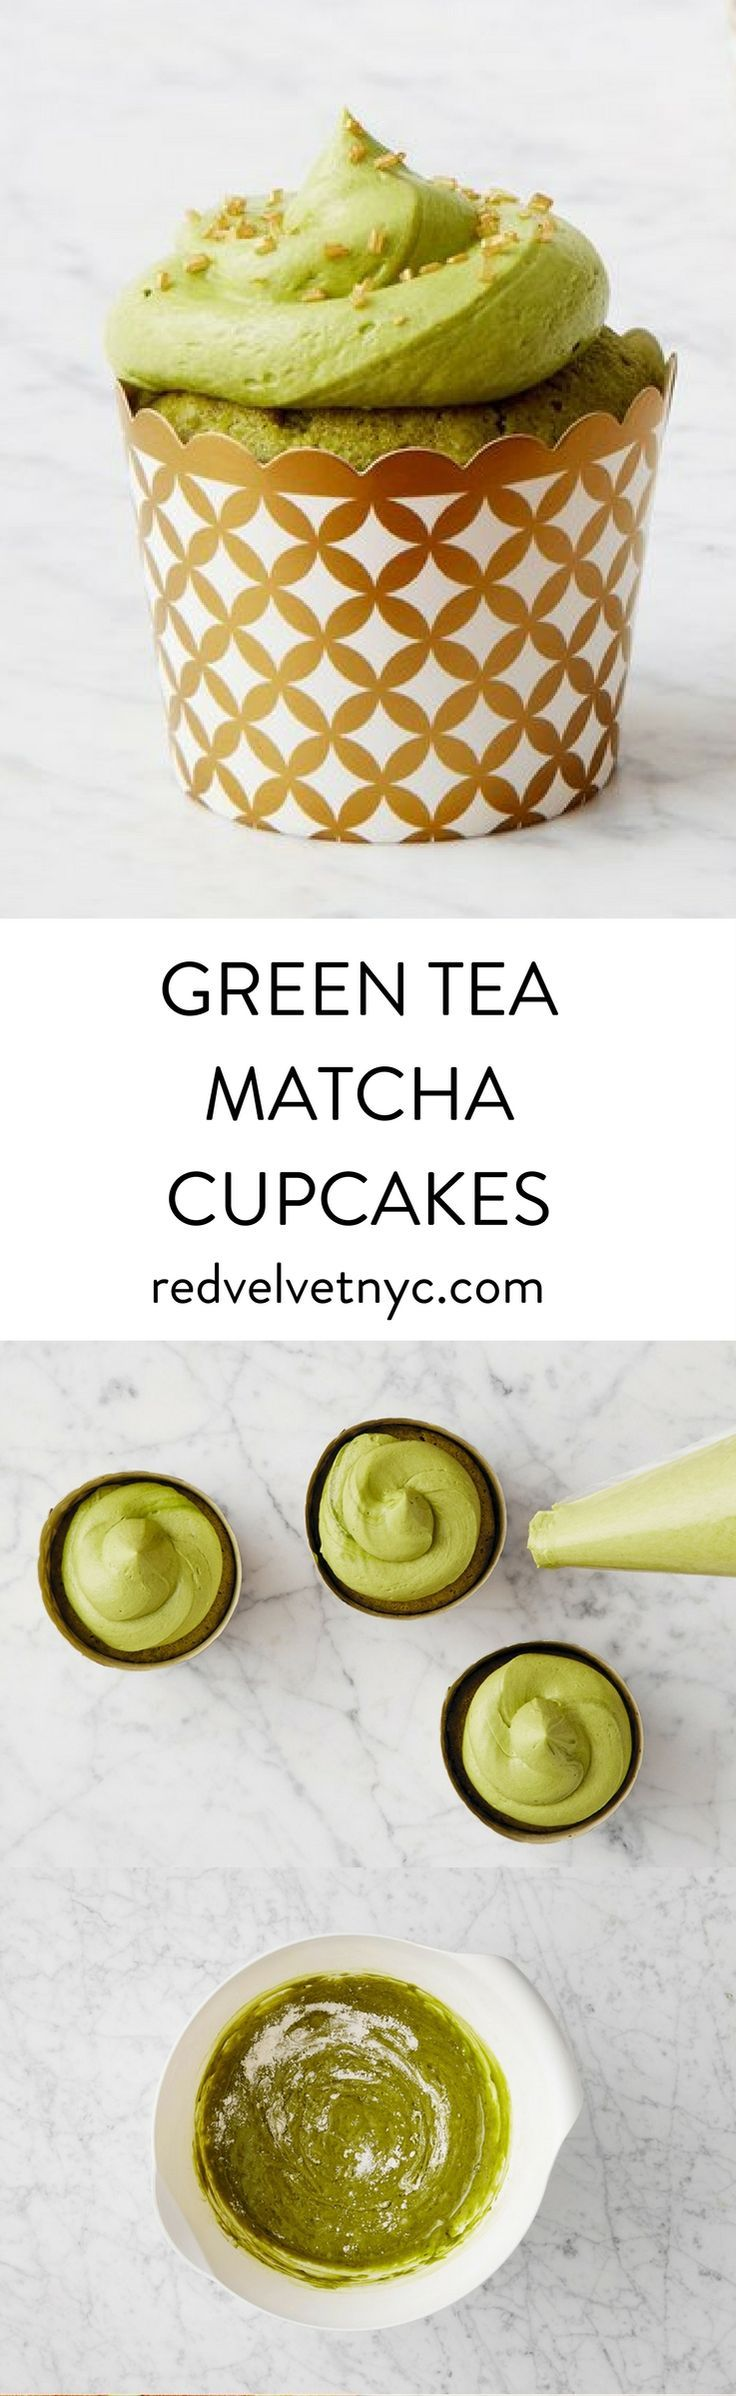 Infused with green tea powder, these moist and bright cupcakes are a mature take on the birthday-party classic. Includes 24 oven-safe cupcake cups.